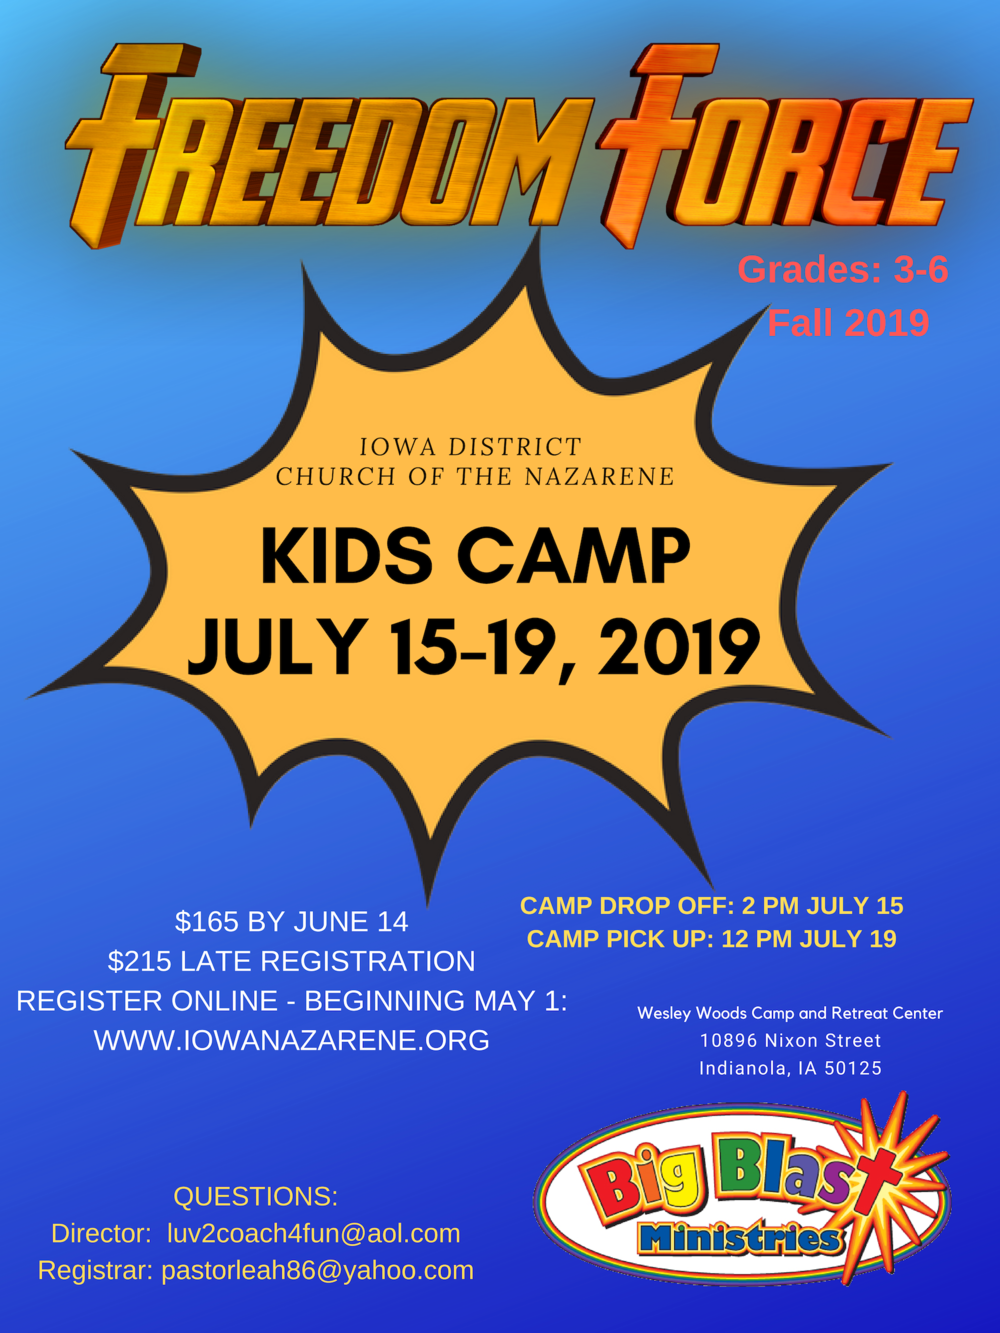 - Kids Camp Registration Opens: May 1, 2019Click HERE to download printable flier